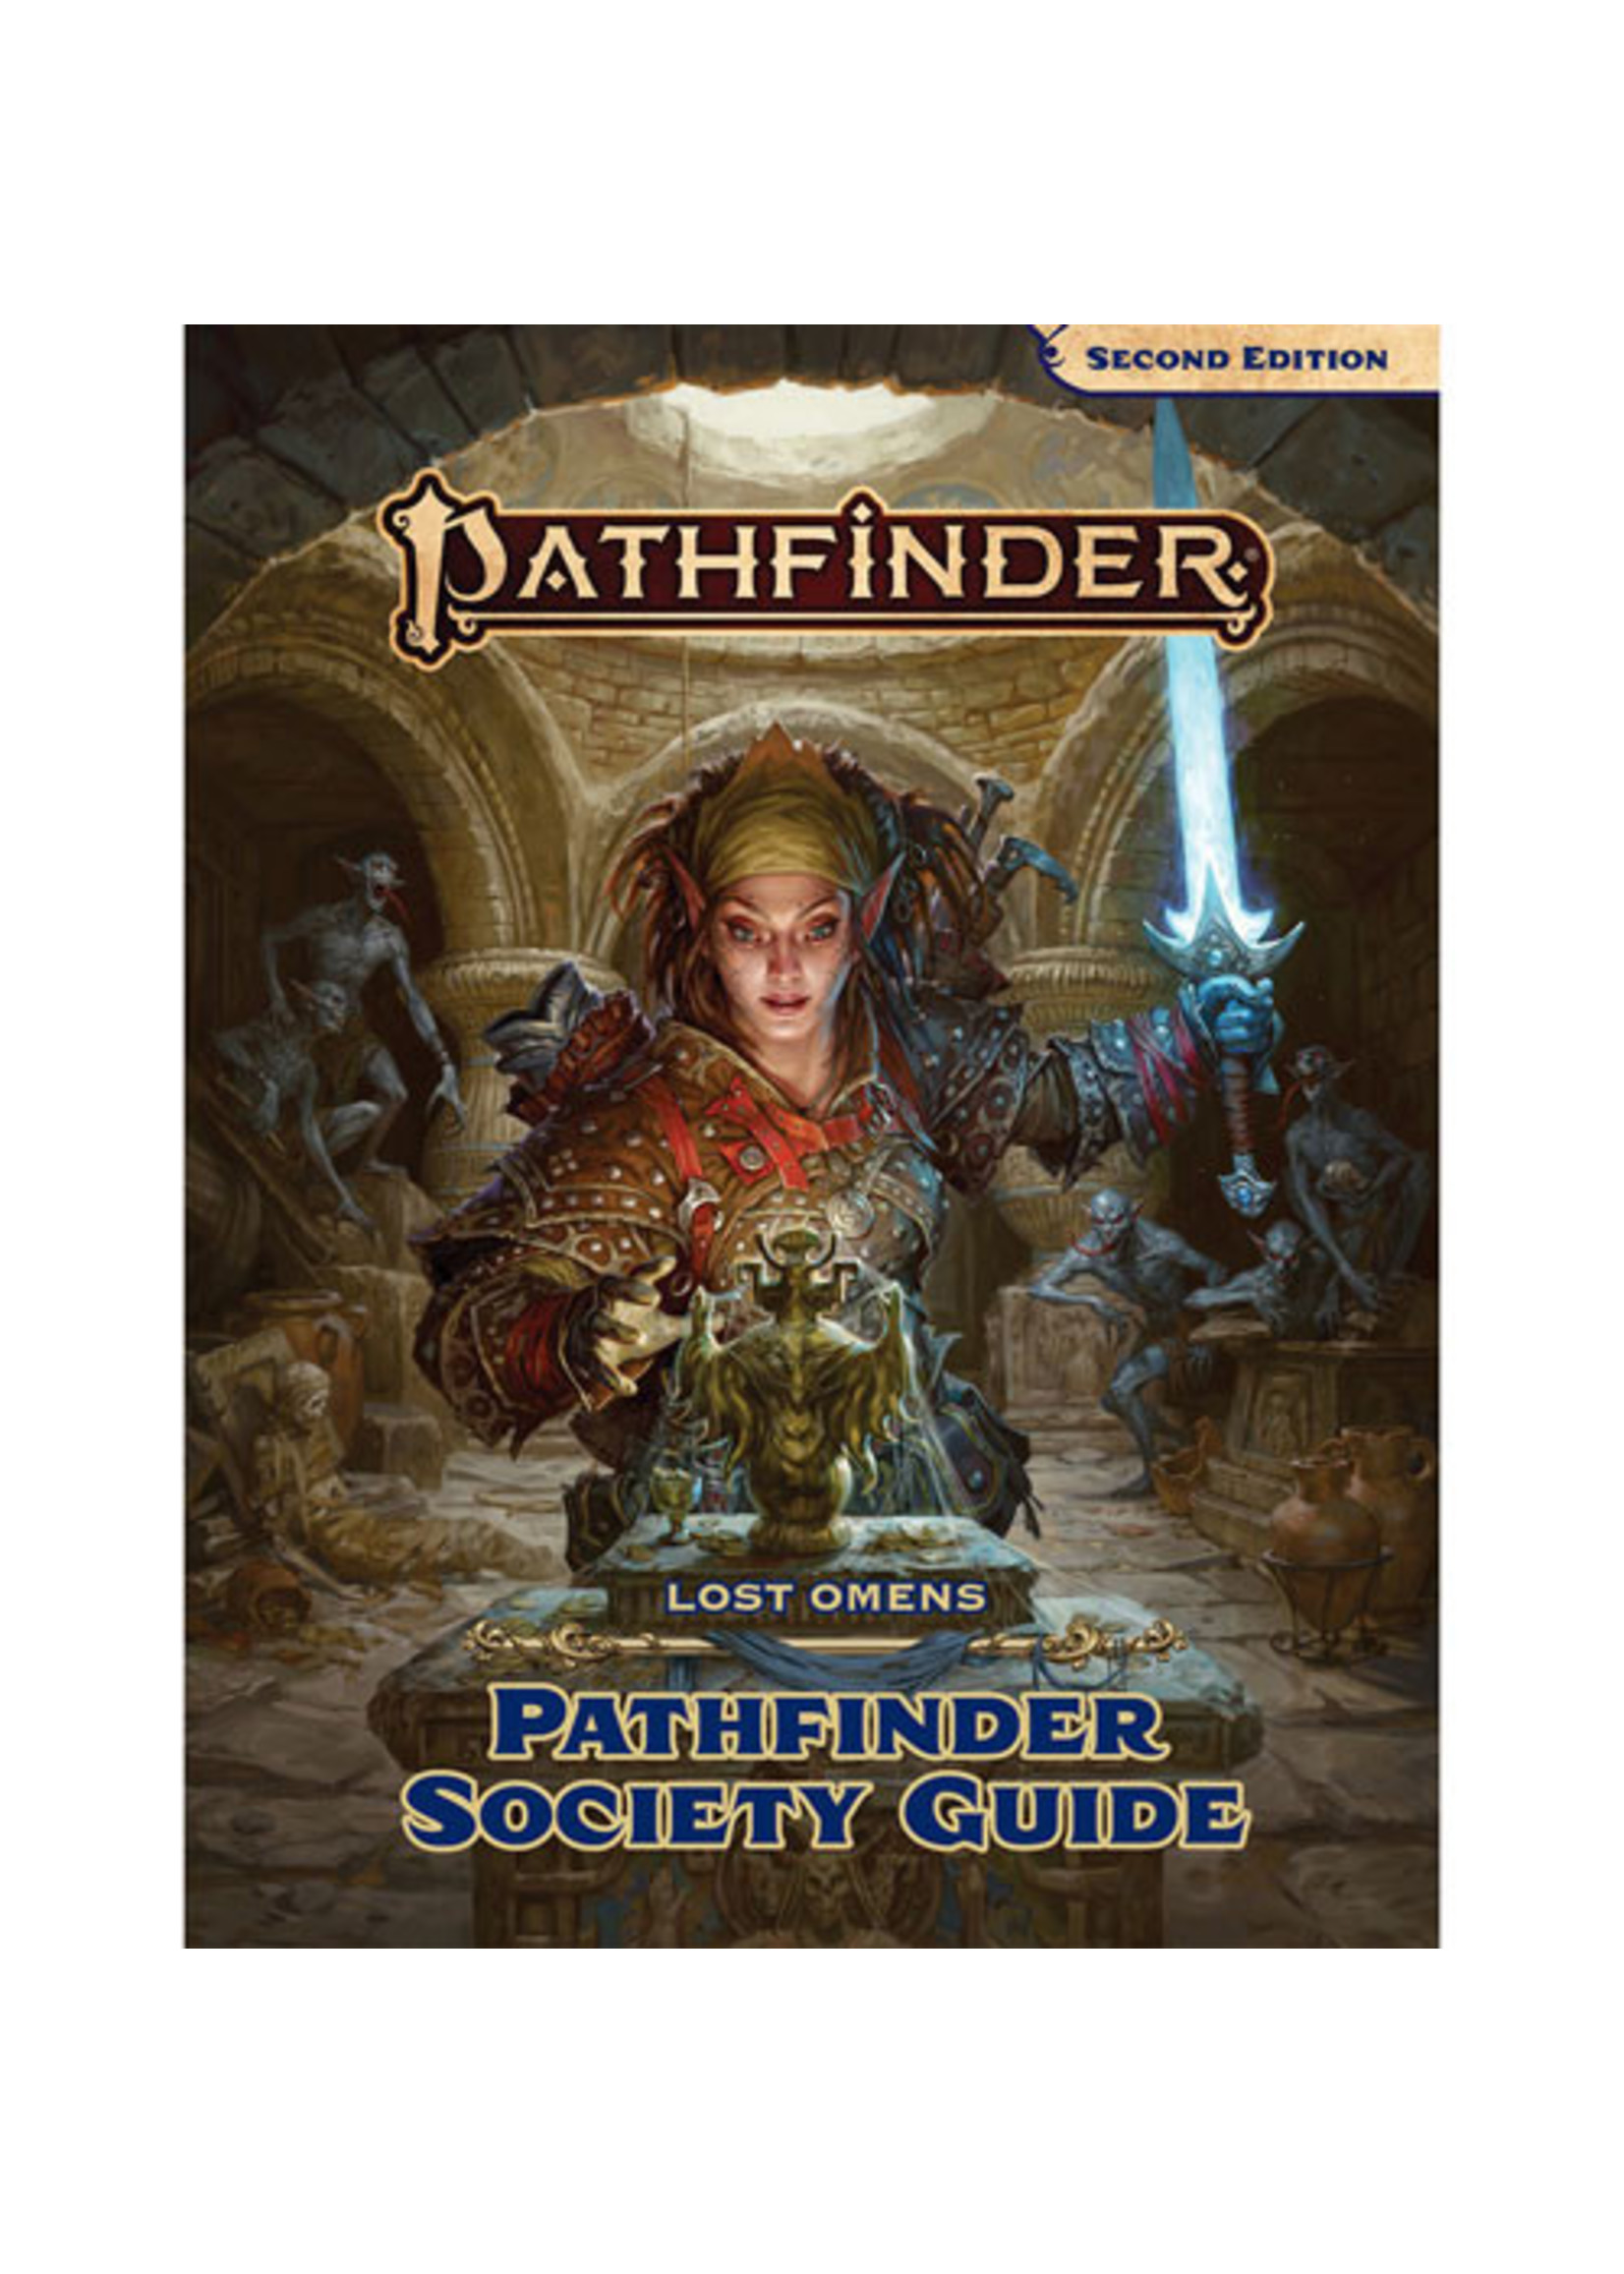 Pathfinder RPG: Lost Omens - Pathfinder Society Guide Hardcover (P2)